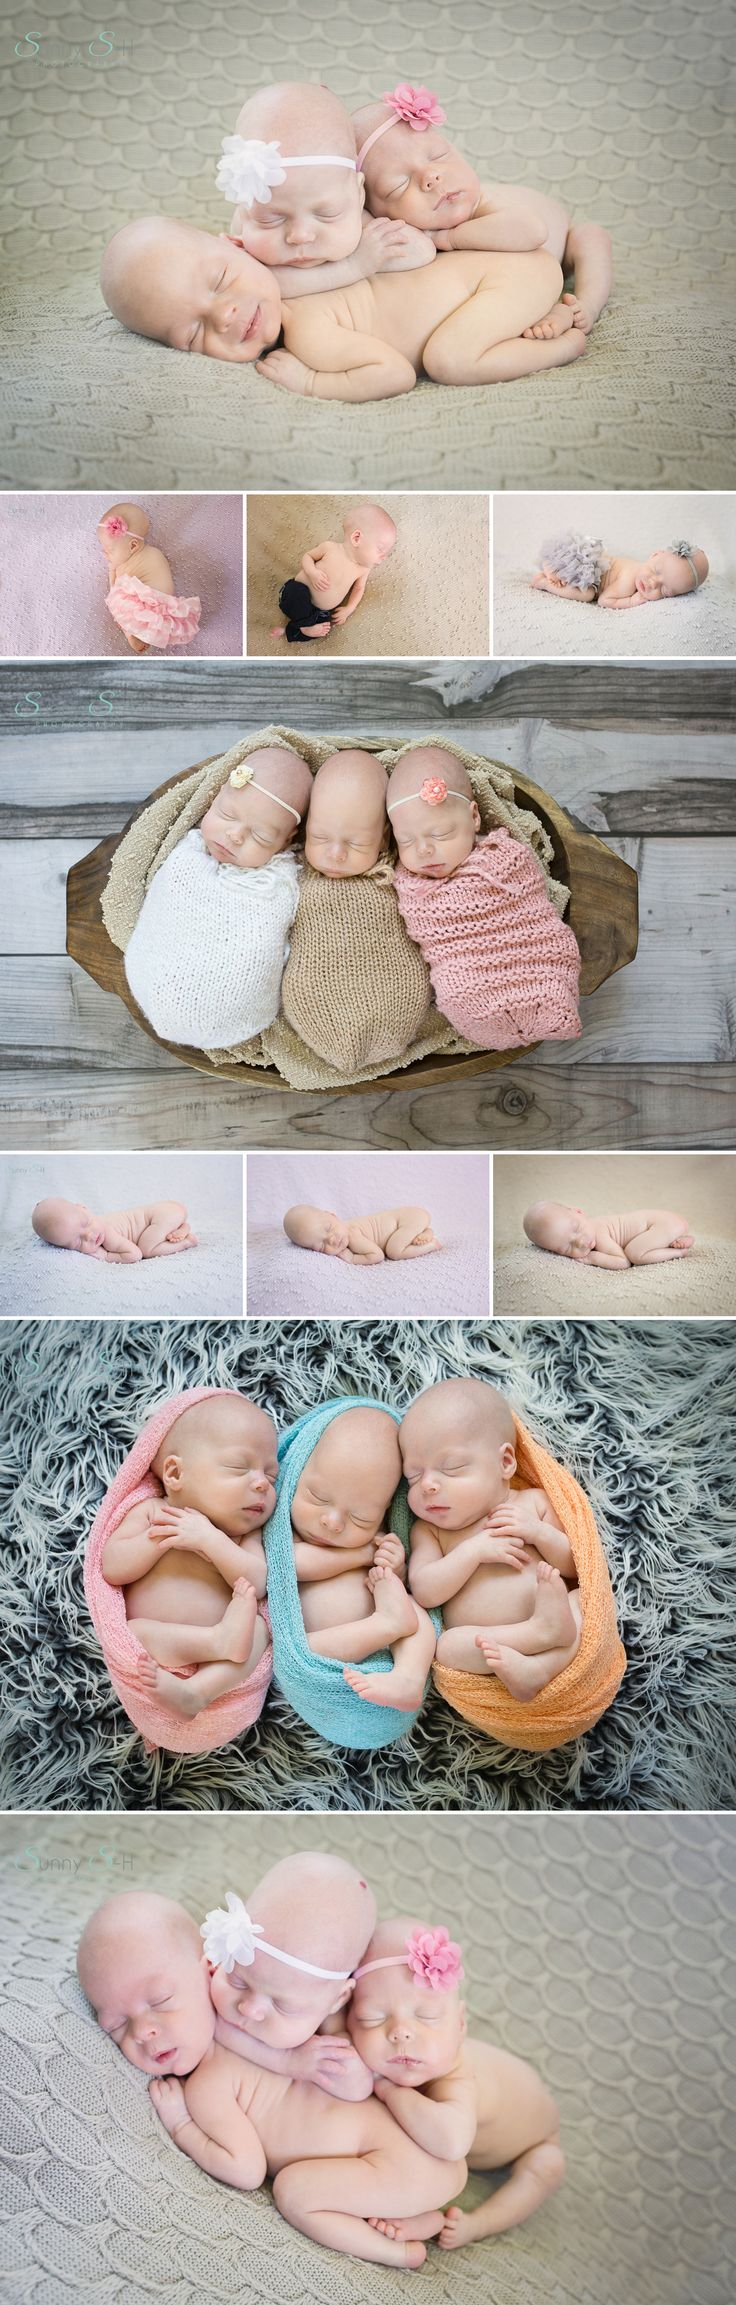 Newborn triplet photography in home baby photo session with month old boy and identical girl triplets also rh ar pinterest